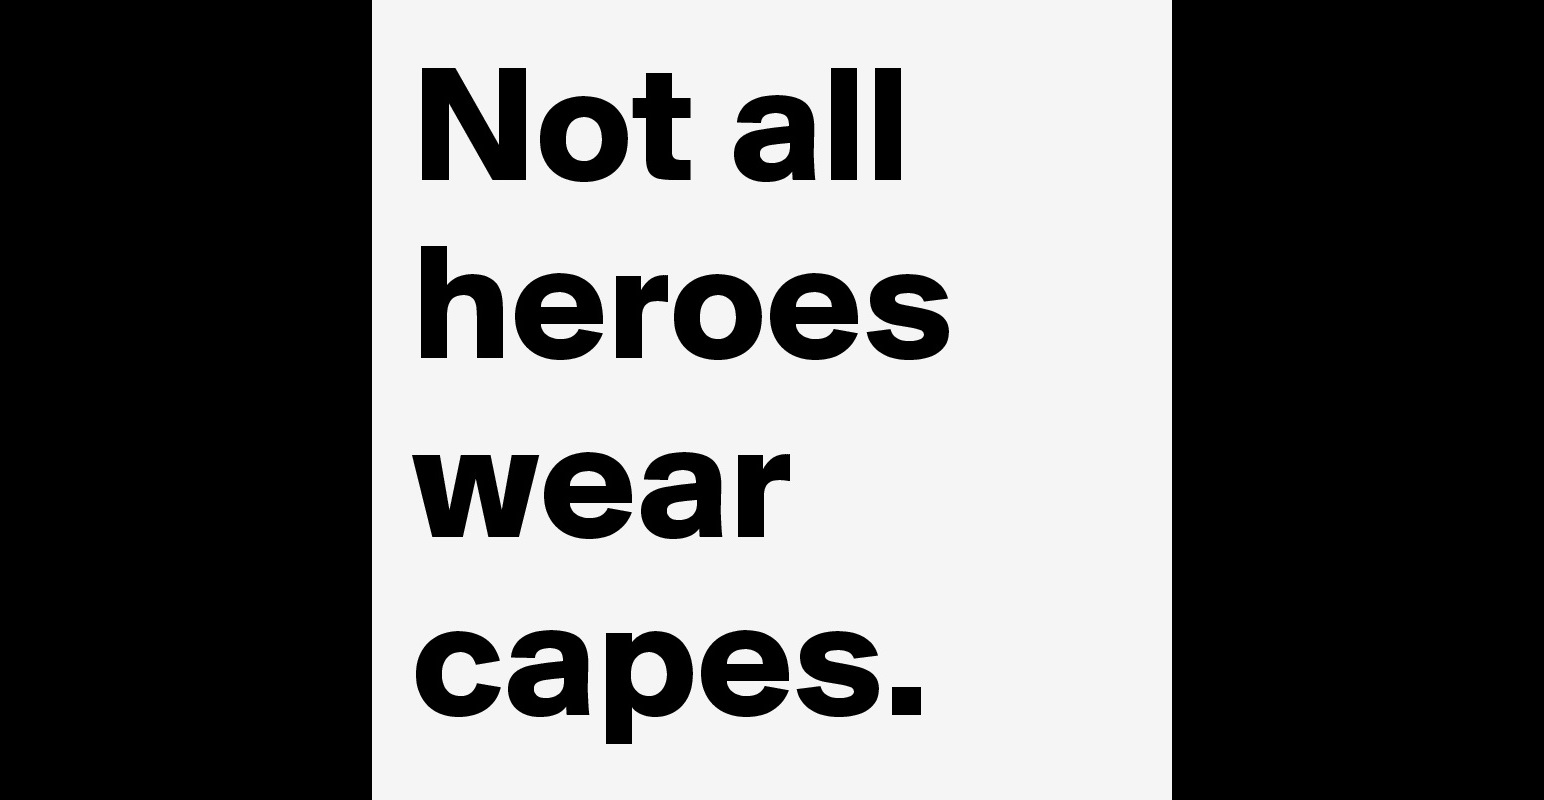 Not all heroes wear capes. - Post by ShanarahB on Boldomatic